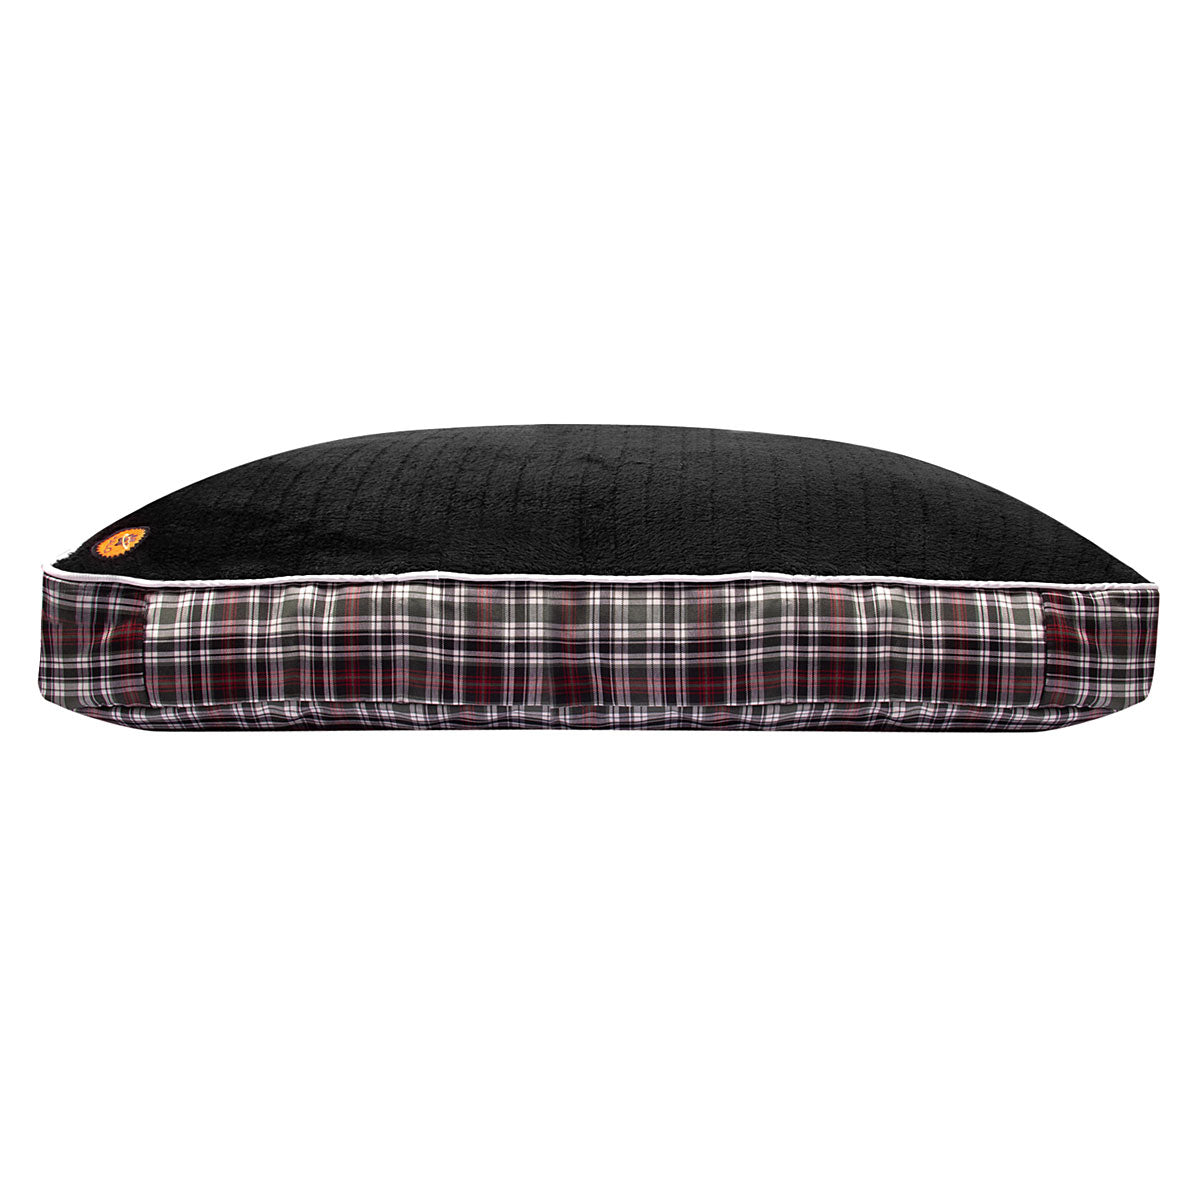 Halo Duck Green Plaid Rectangular Dog Bed_2856